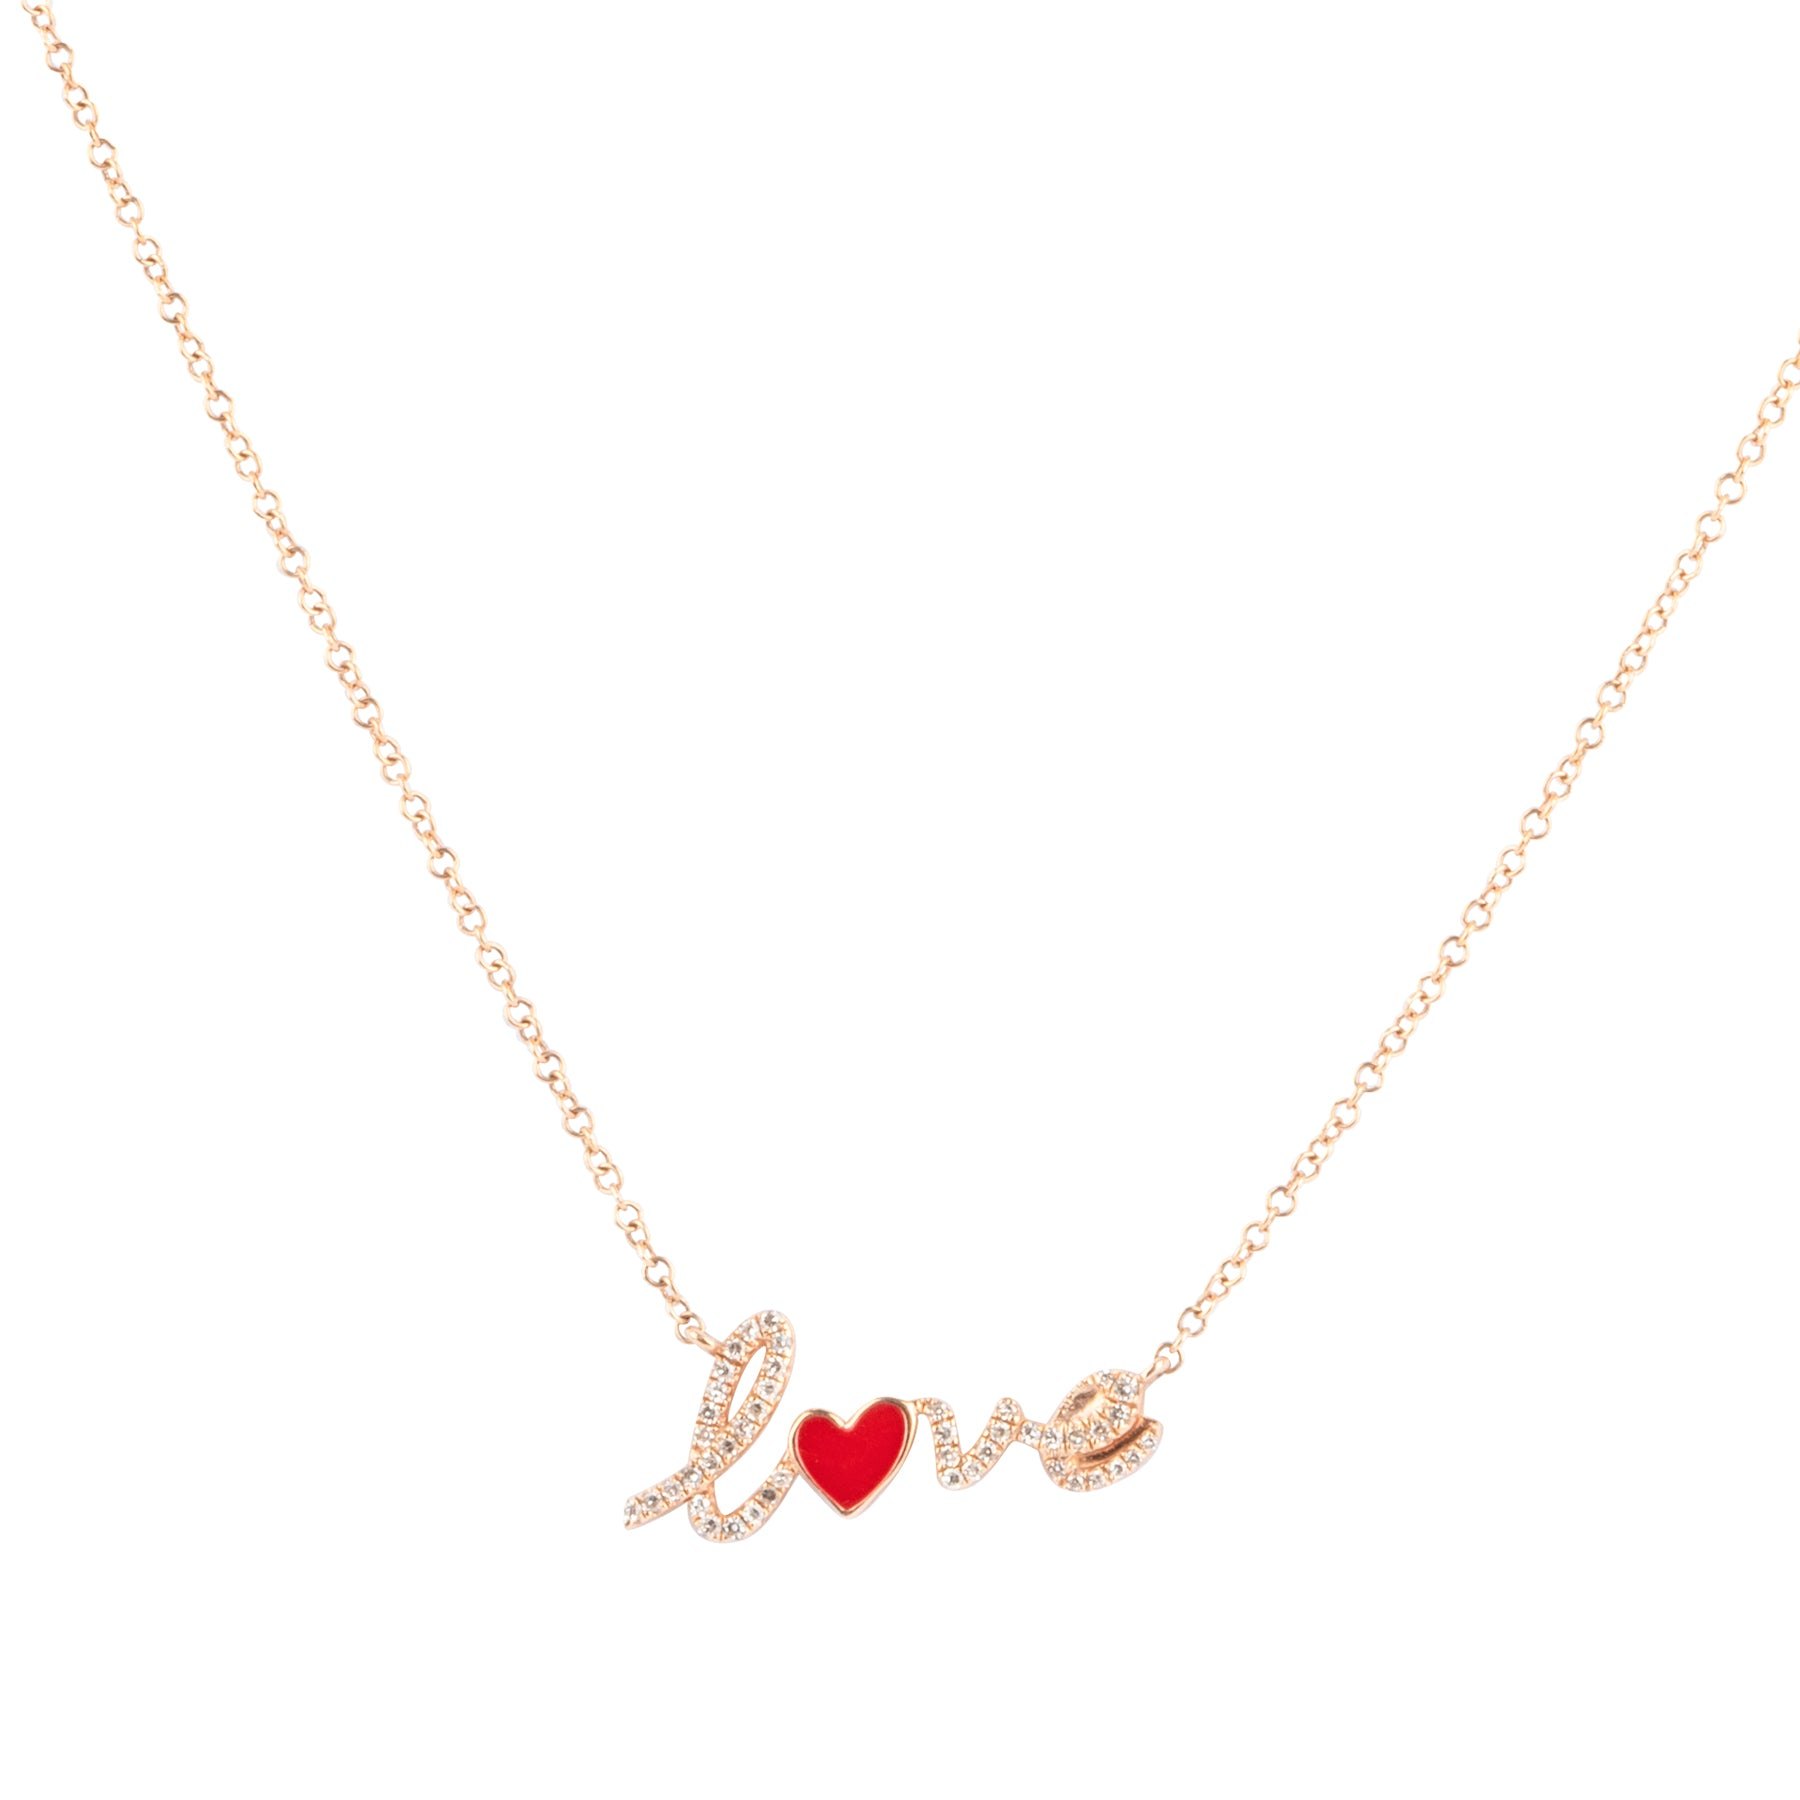 Diamond Love Necklace with Red Enamel Heart